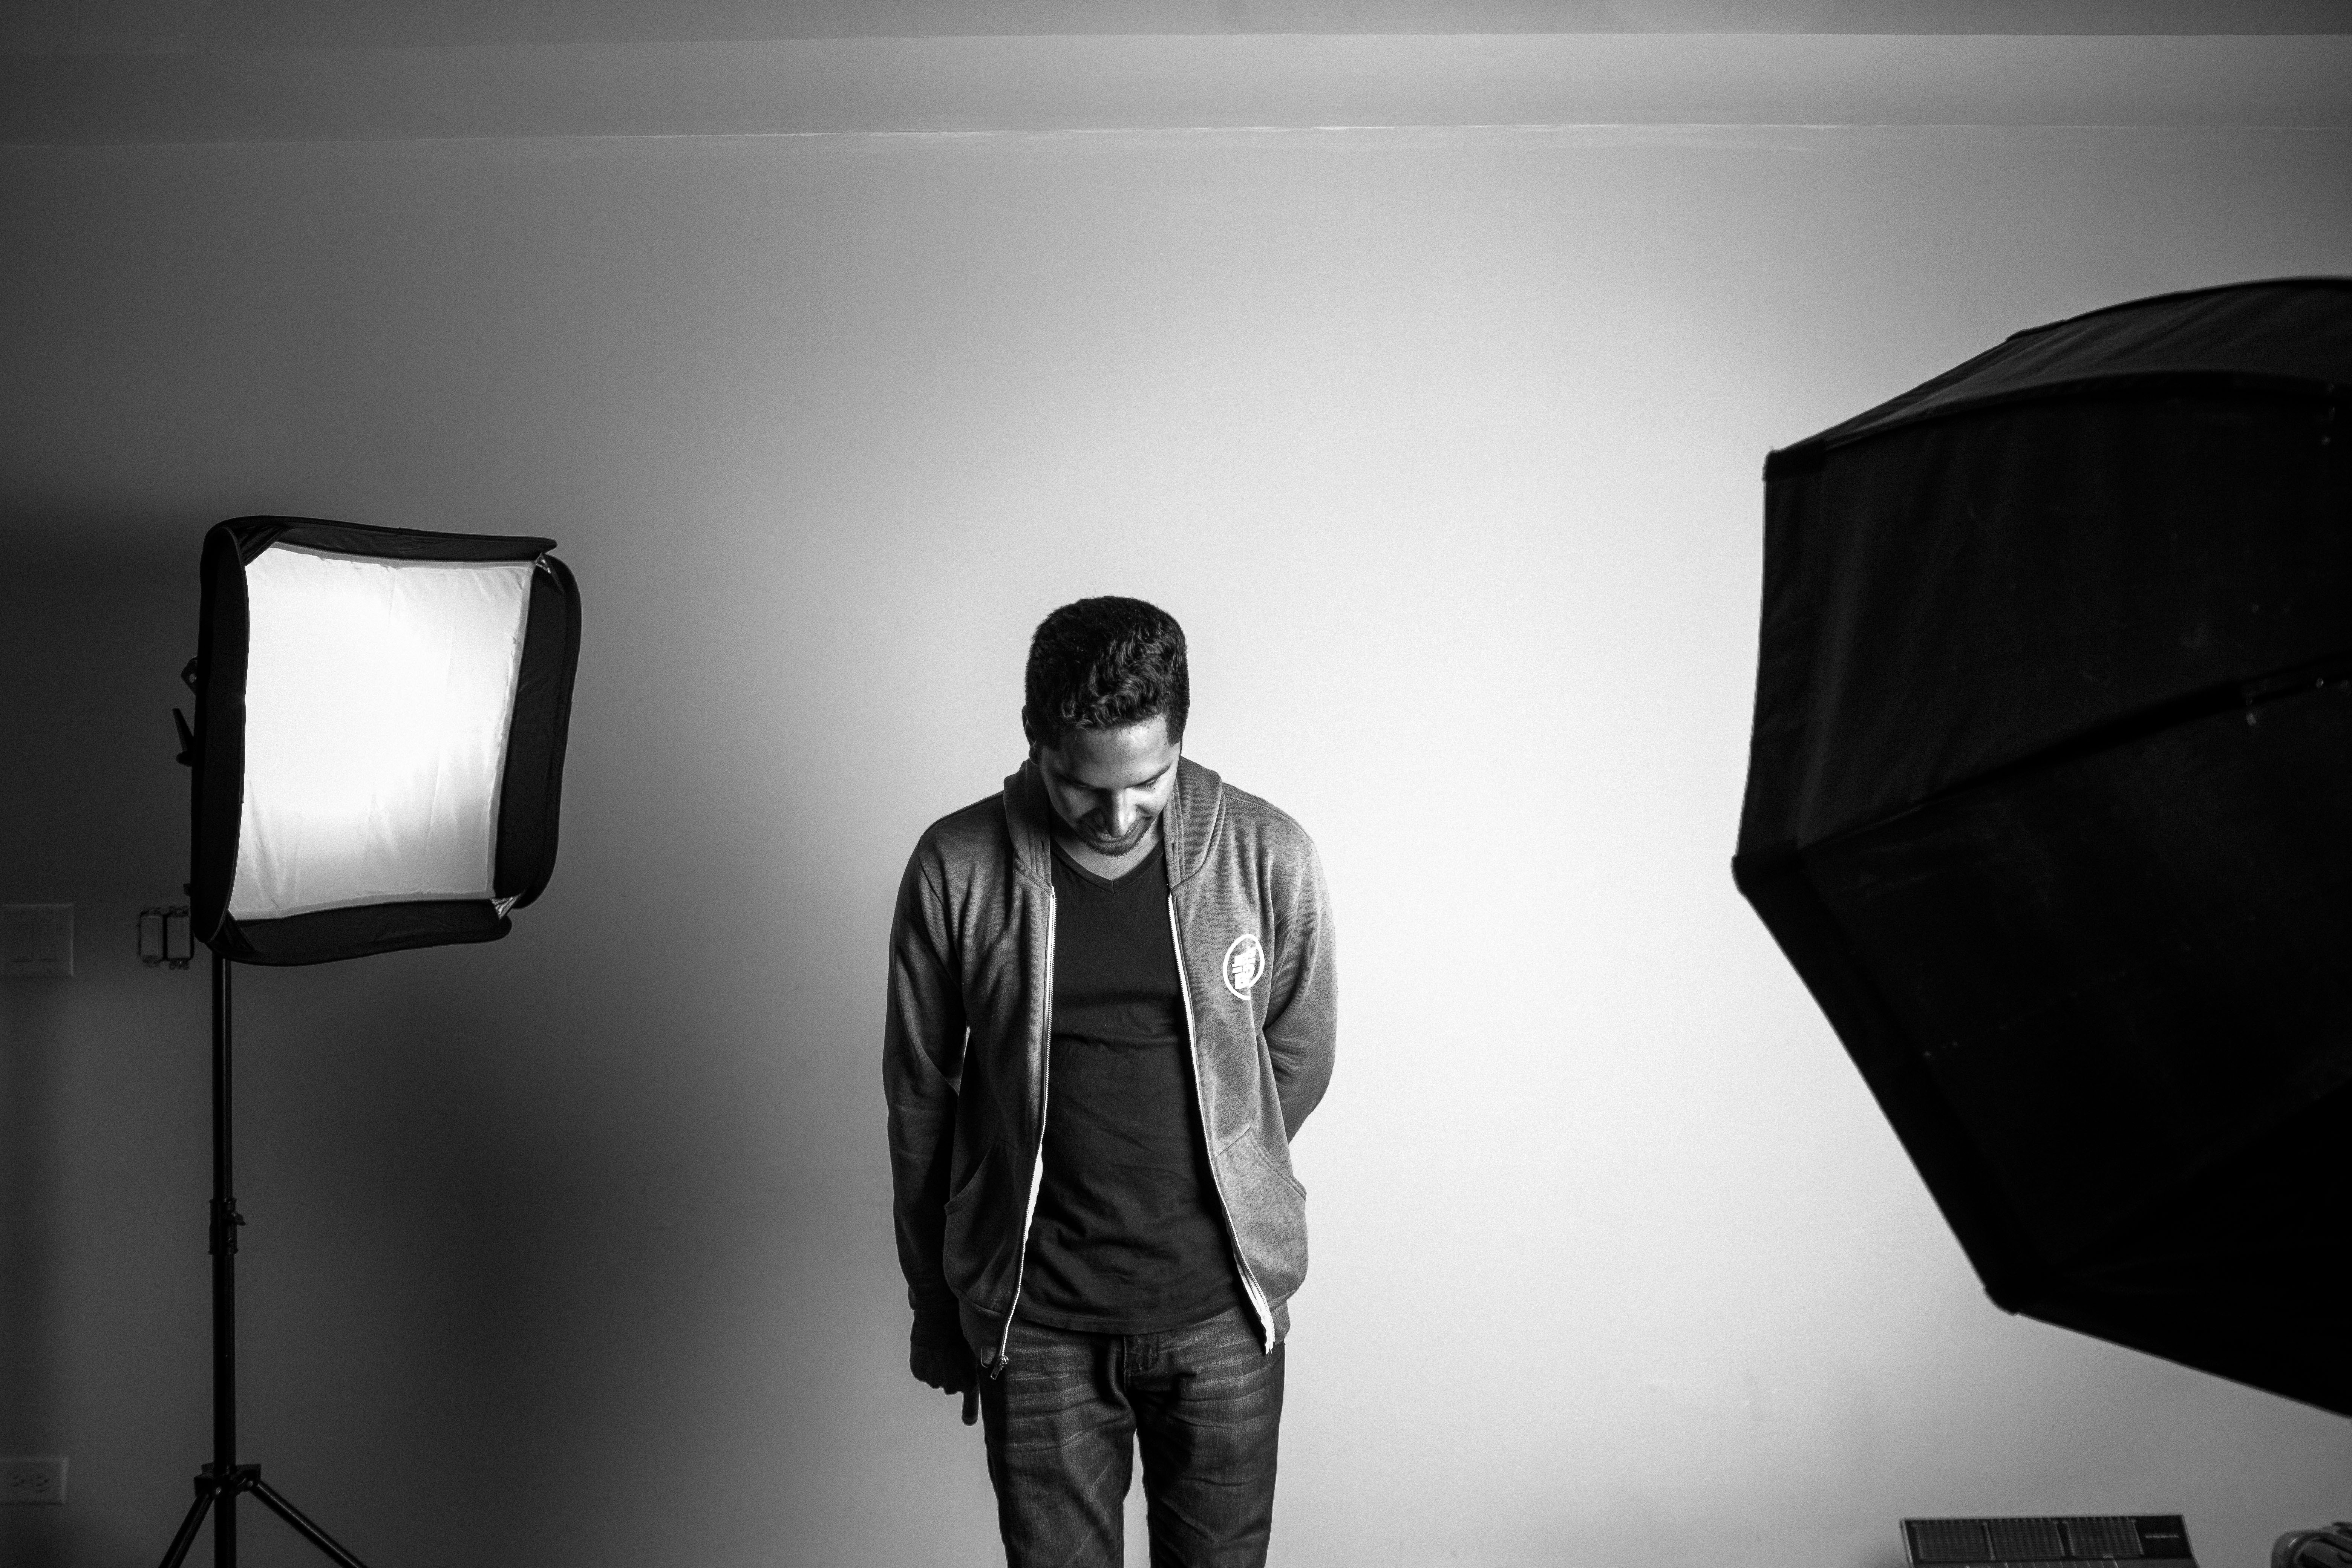 Canva - Grayscale Photography of Standing Man in Studio